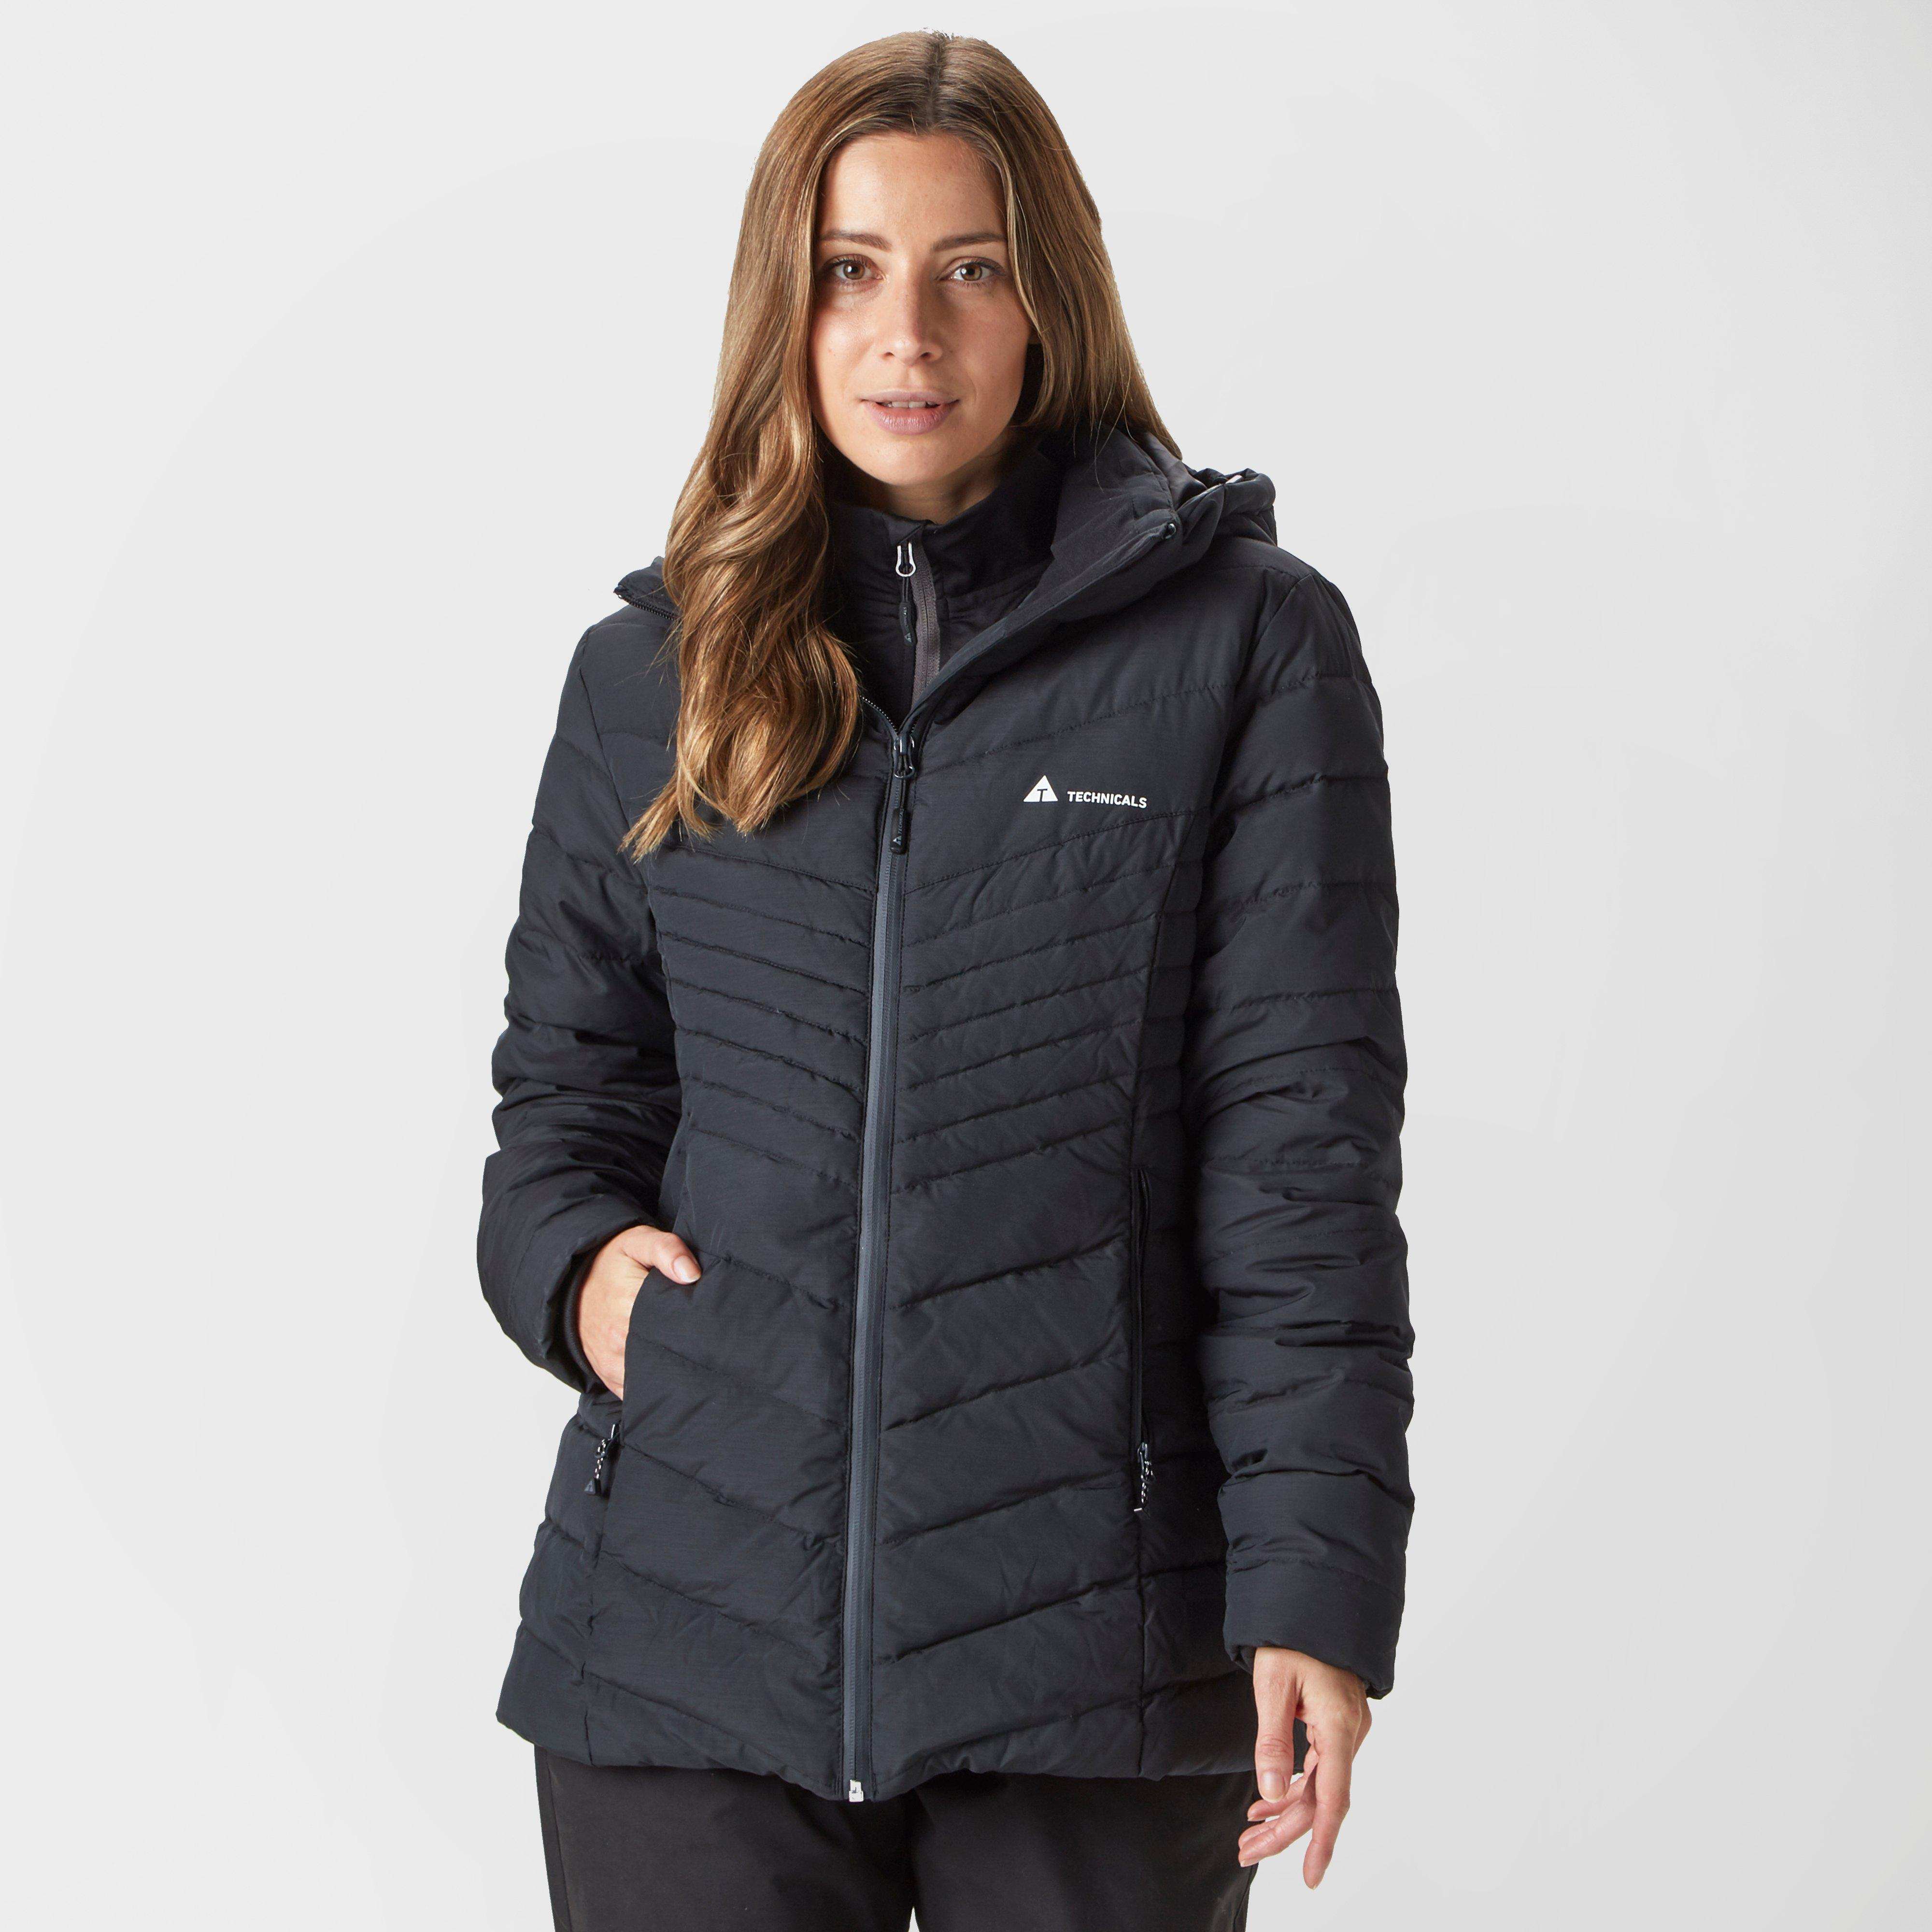 96d2a5045d09e Details about New Technicals Women s Chill Down Jacket Outdoor Clothing